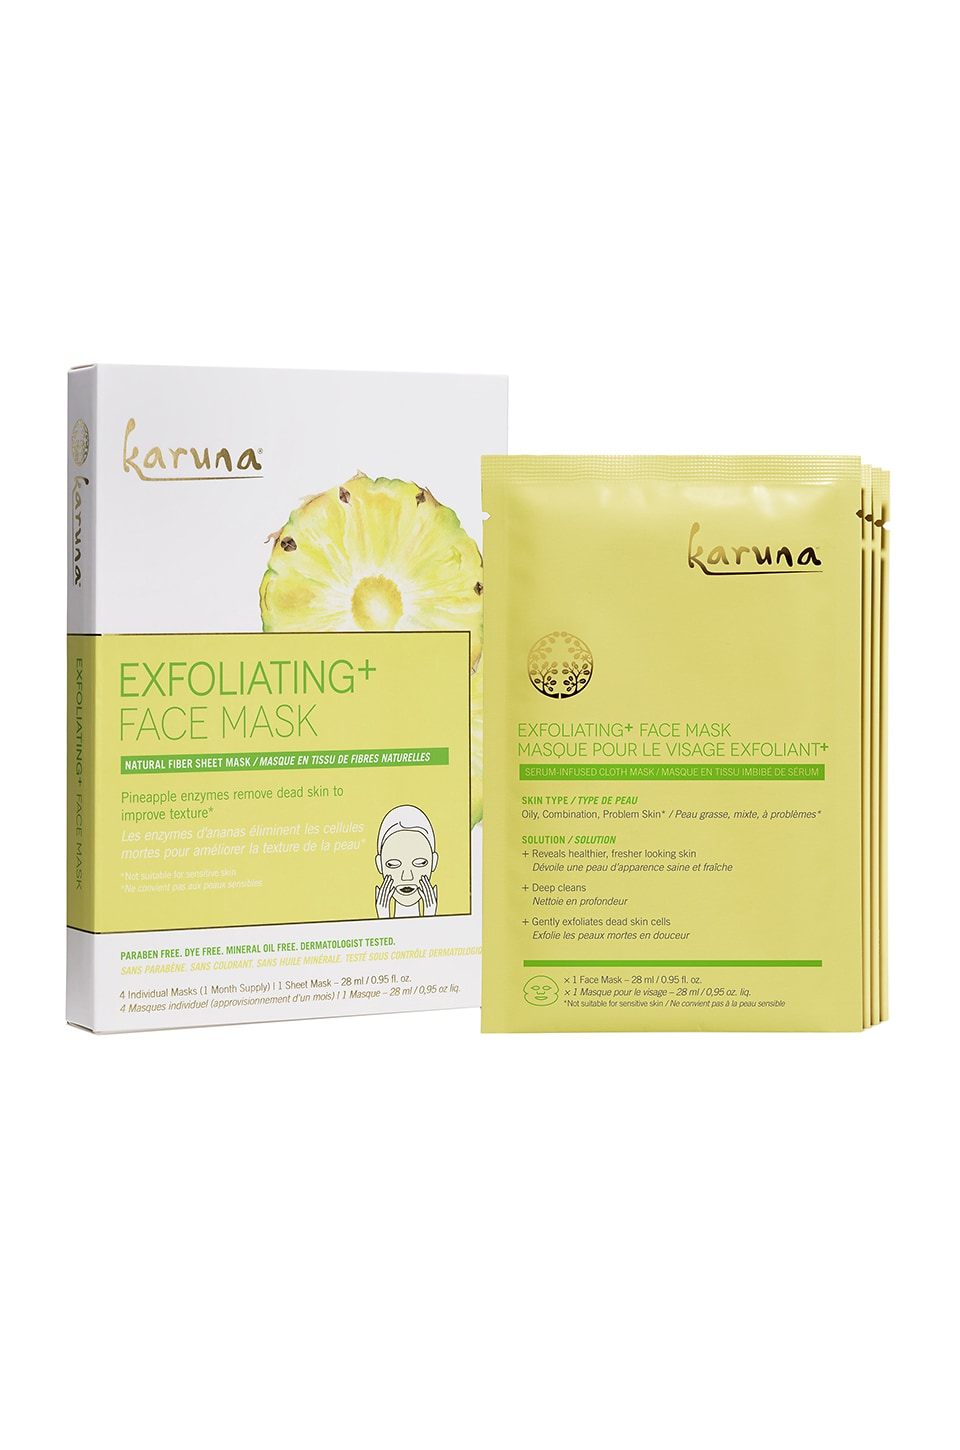 Karuna Exfoliating+ Mask 4 Pack